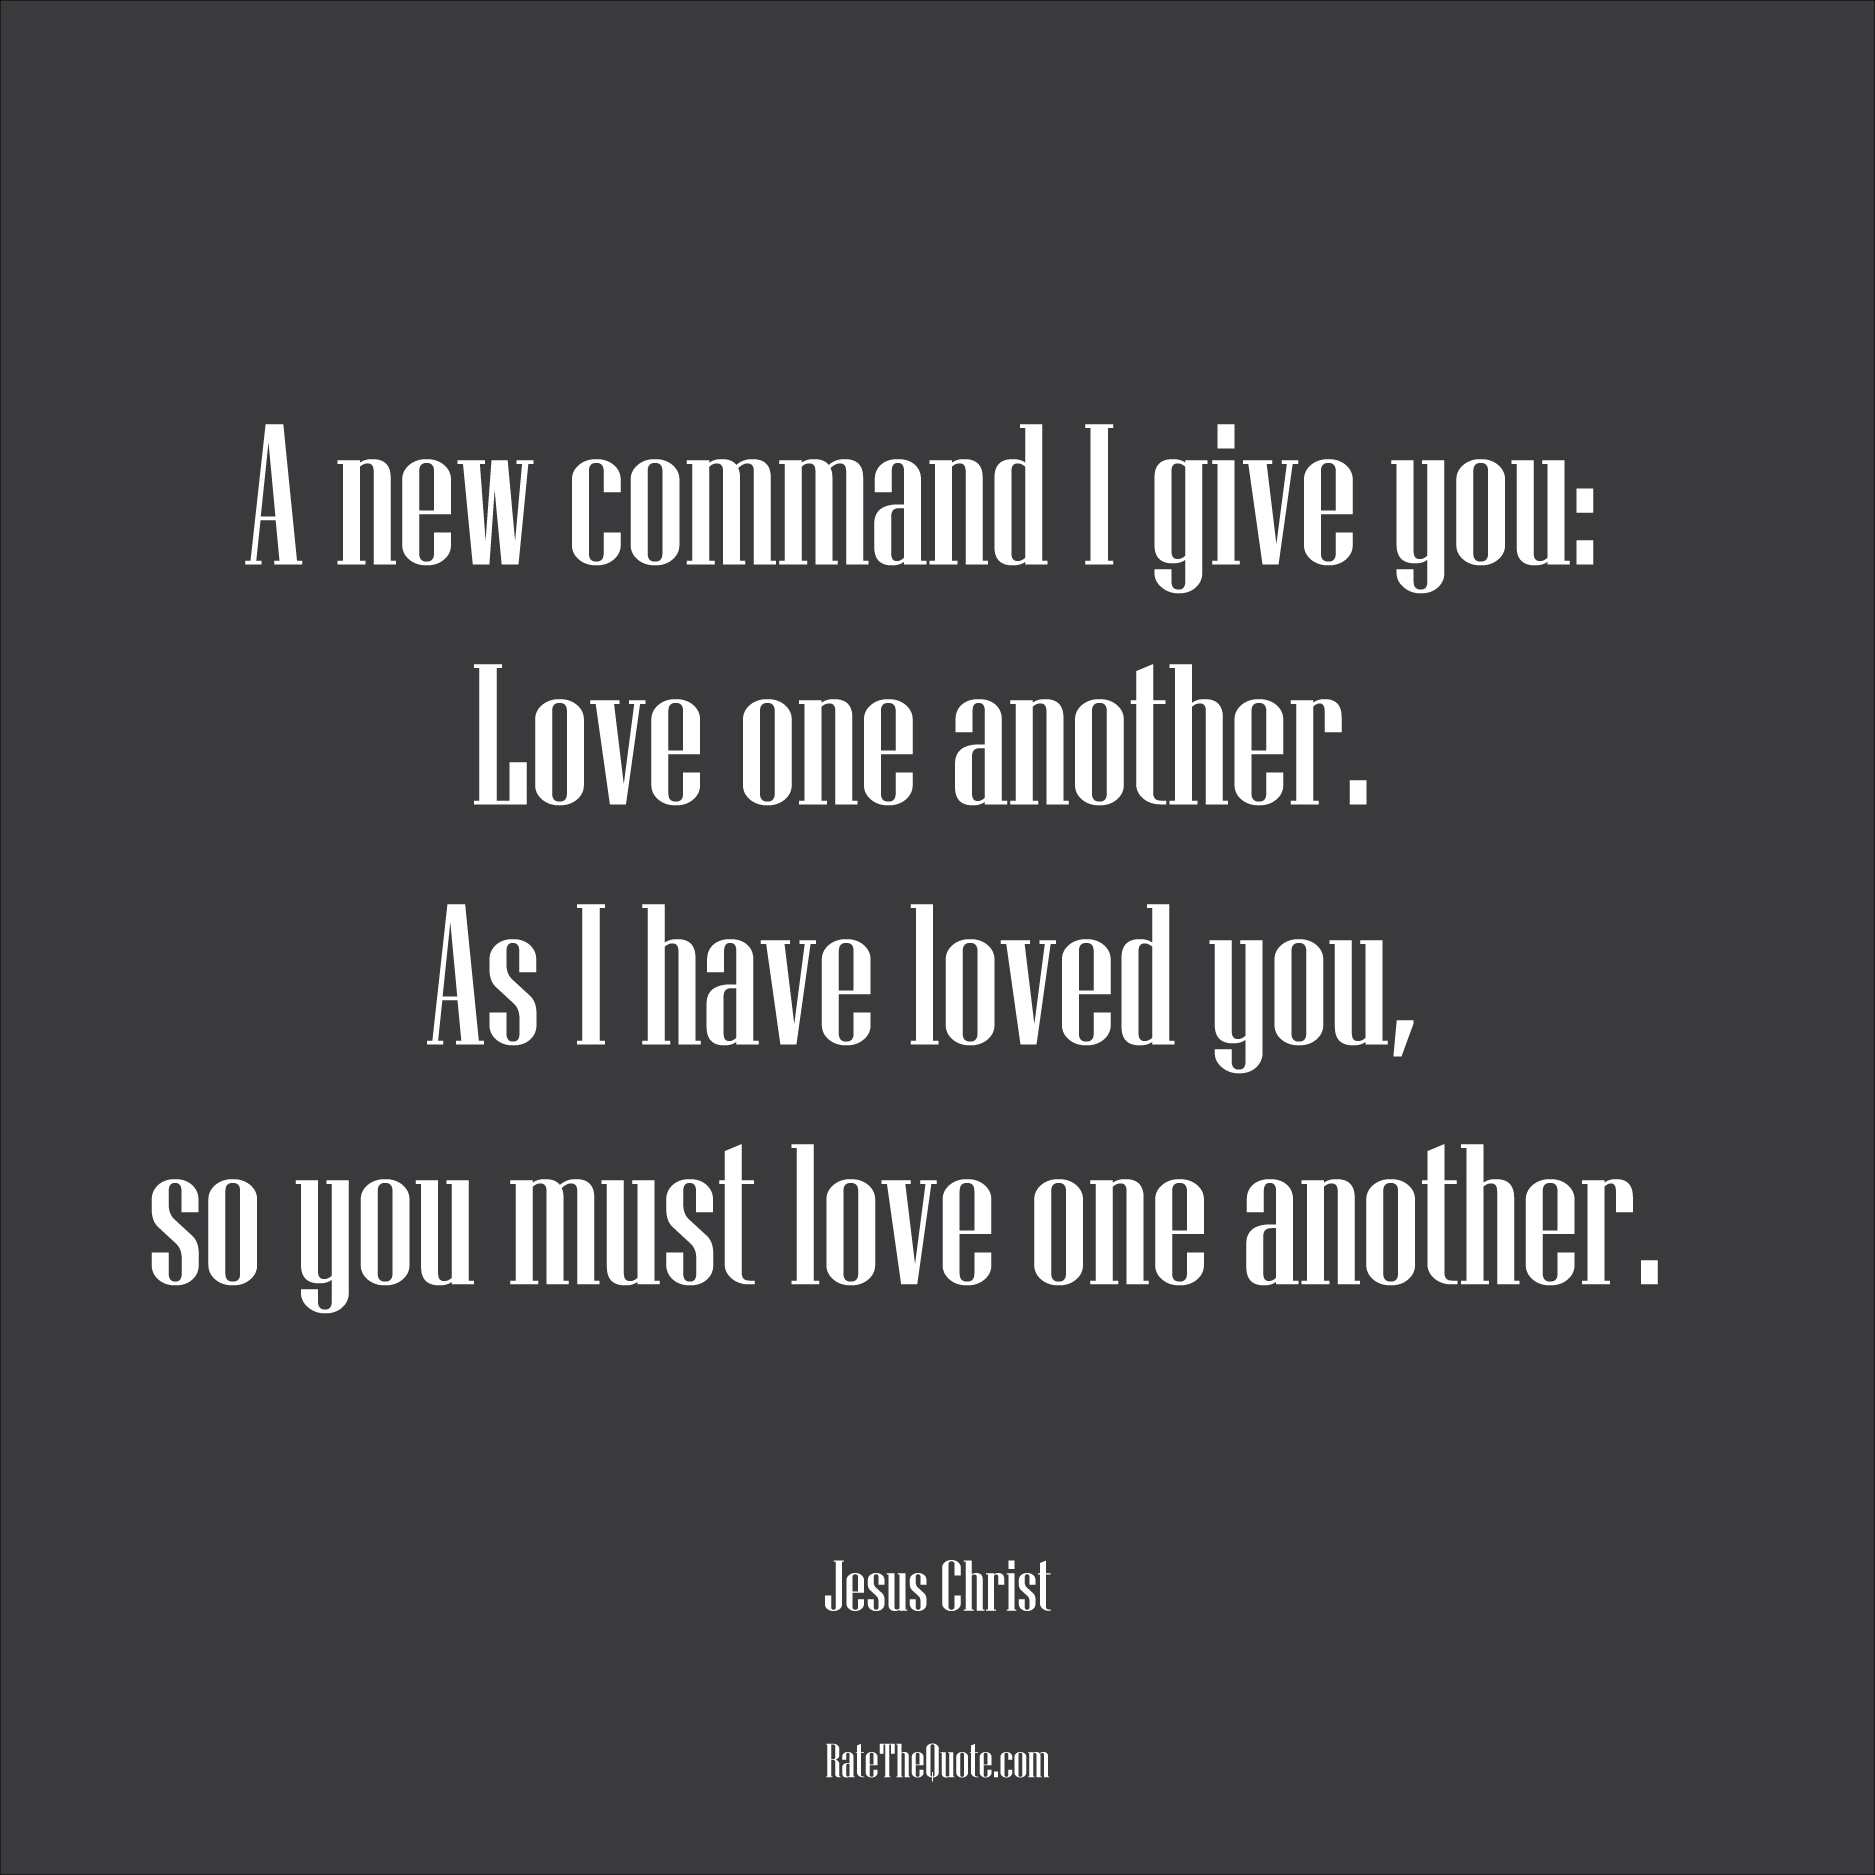 Love Quotes A new command I give you: Love one another. As I have loved you, so you must love one another. Jesus Christ